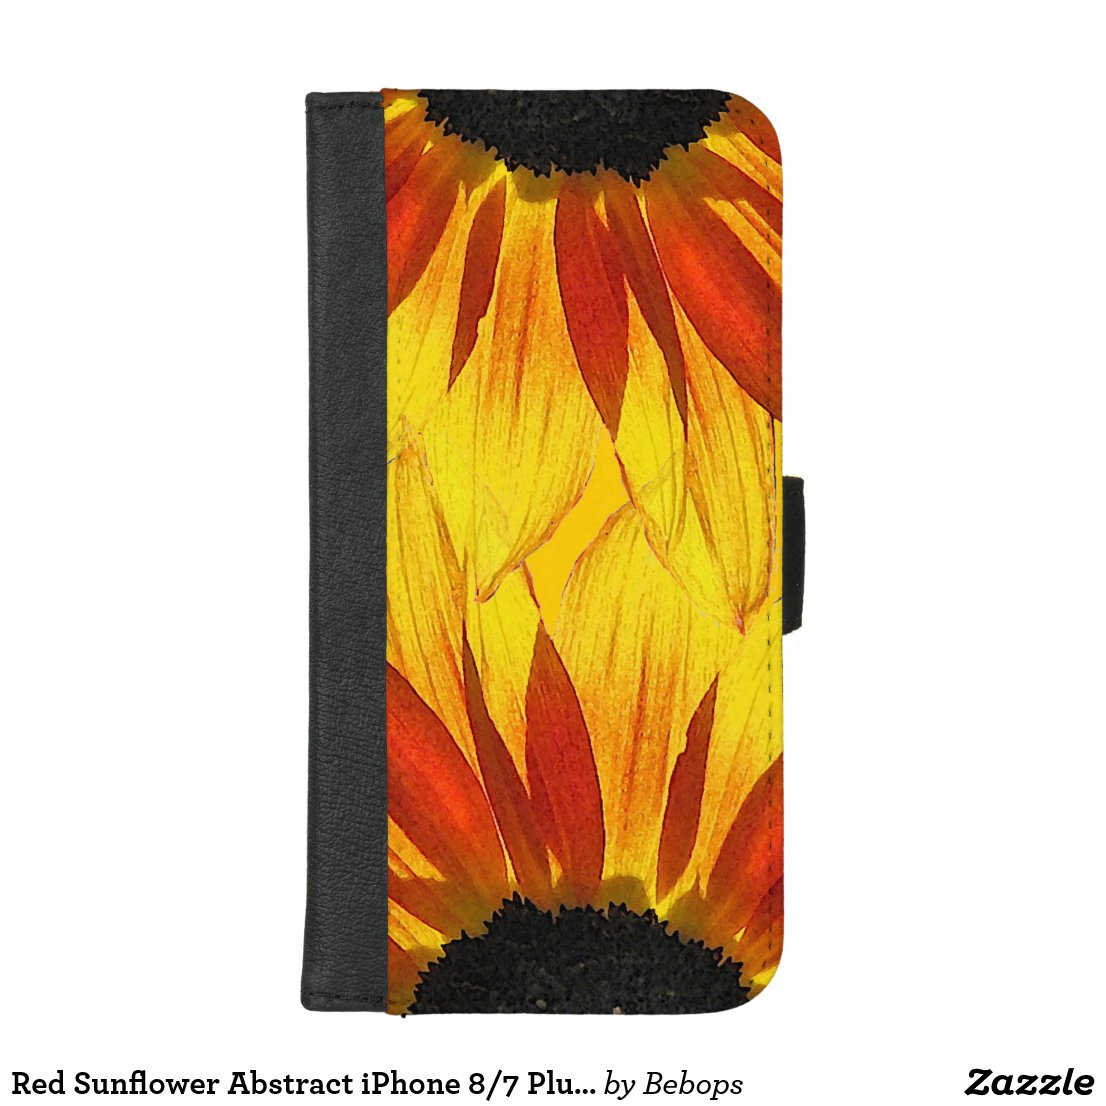 Red Sunflower Abstract iPhone 8/7 Plus Wallet Case